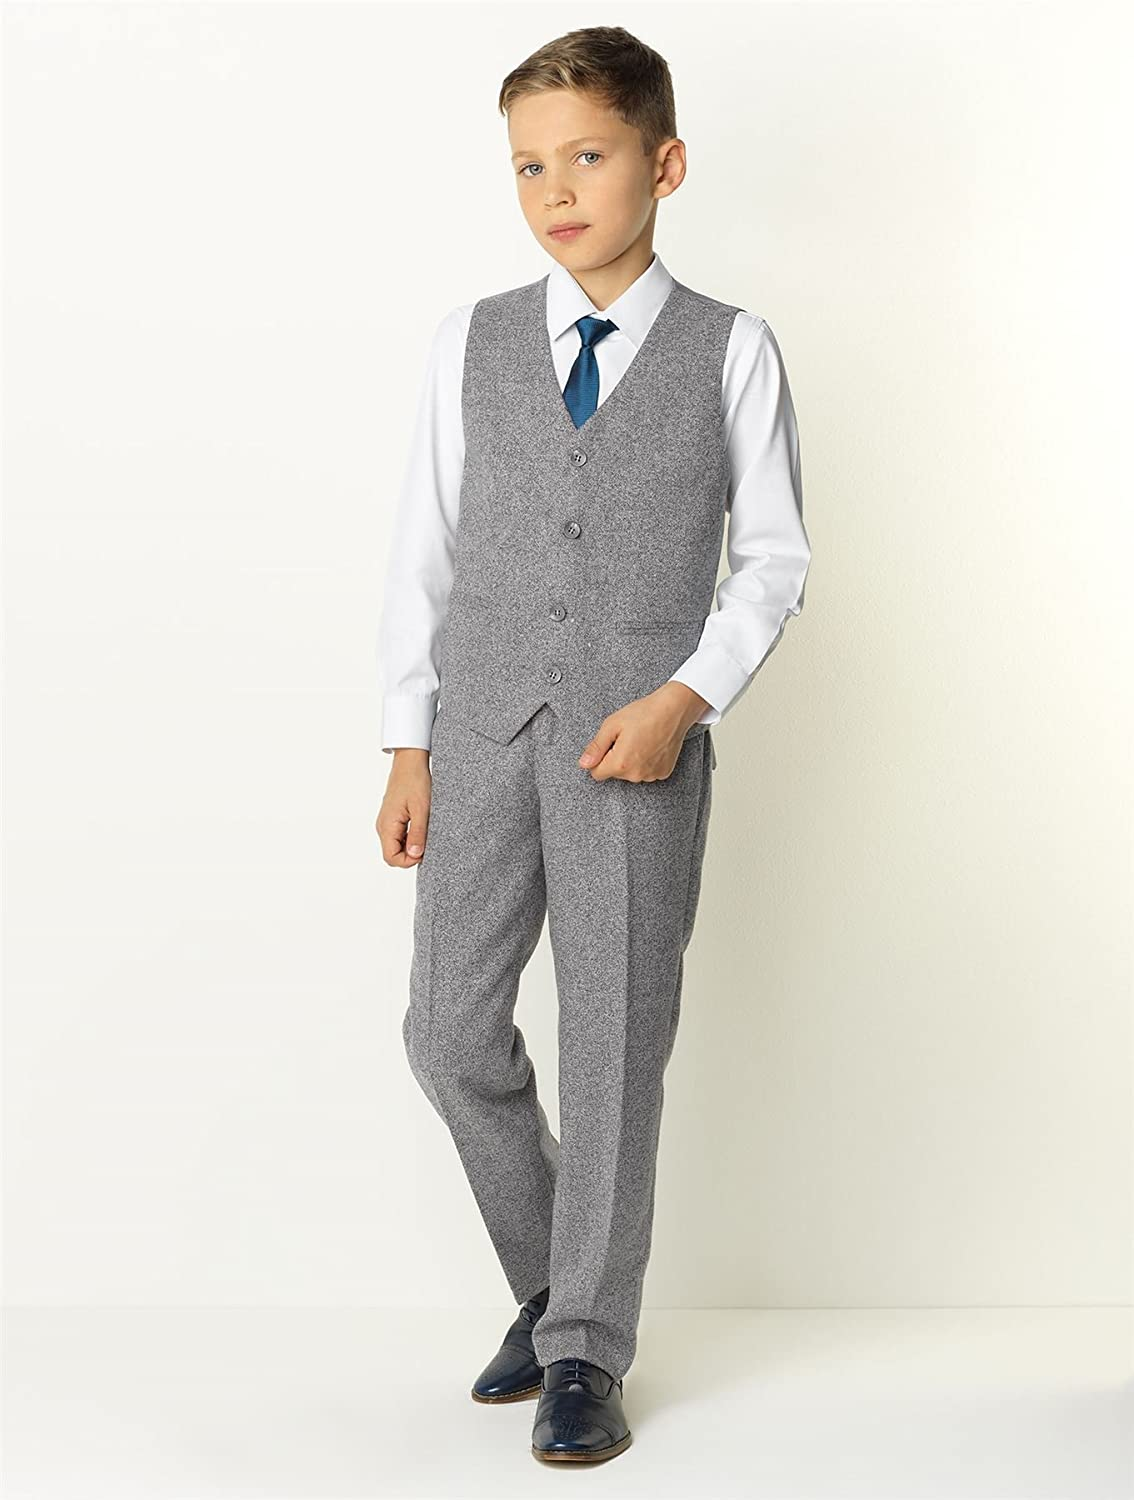 1930s Childrens Fashion: Girls, Boys, Toddler, Baby Costumes Paisley of London Boys Gray Suit Ring Bearer Suit $84.99 AT vintagedancer.com